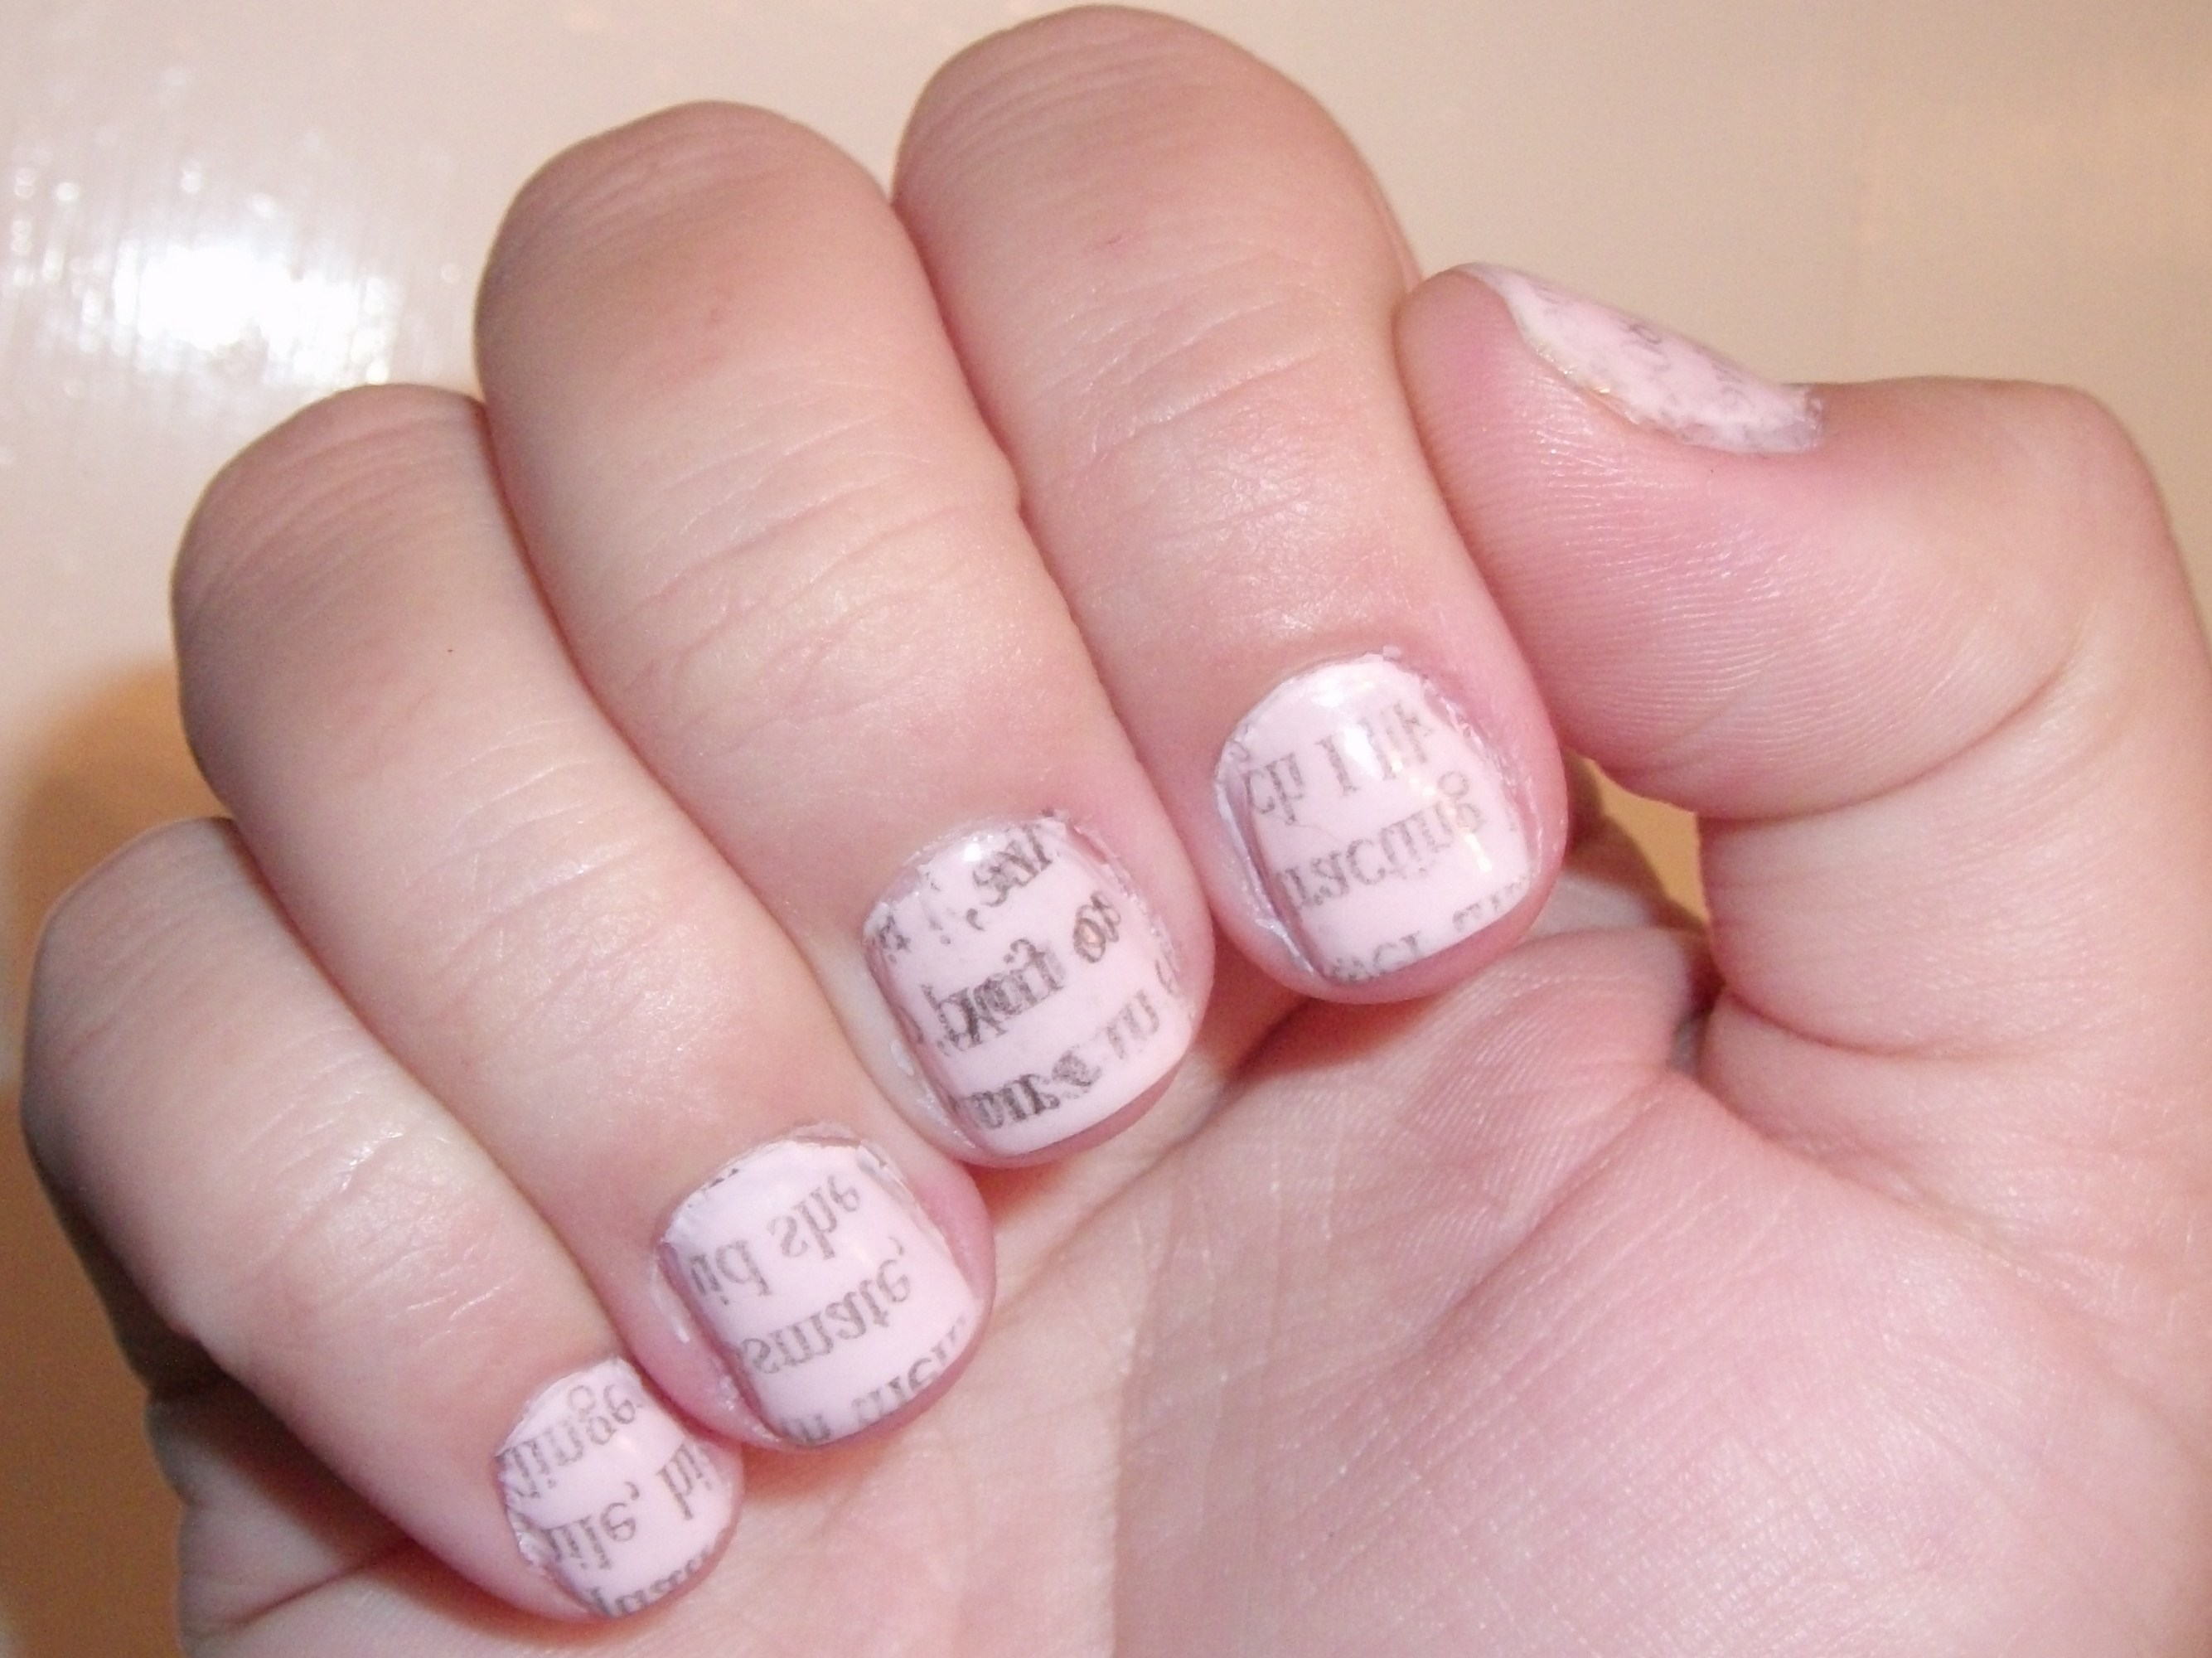 Extra Read All About It Newsprint Nails